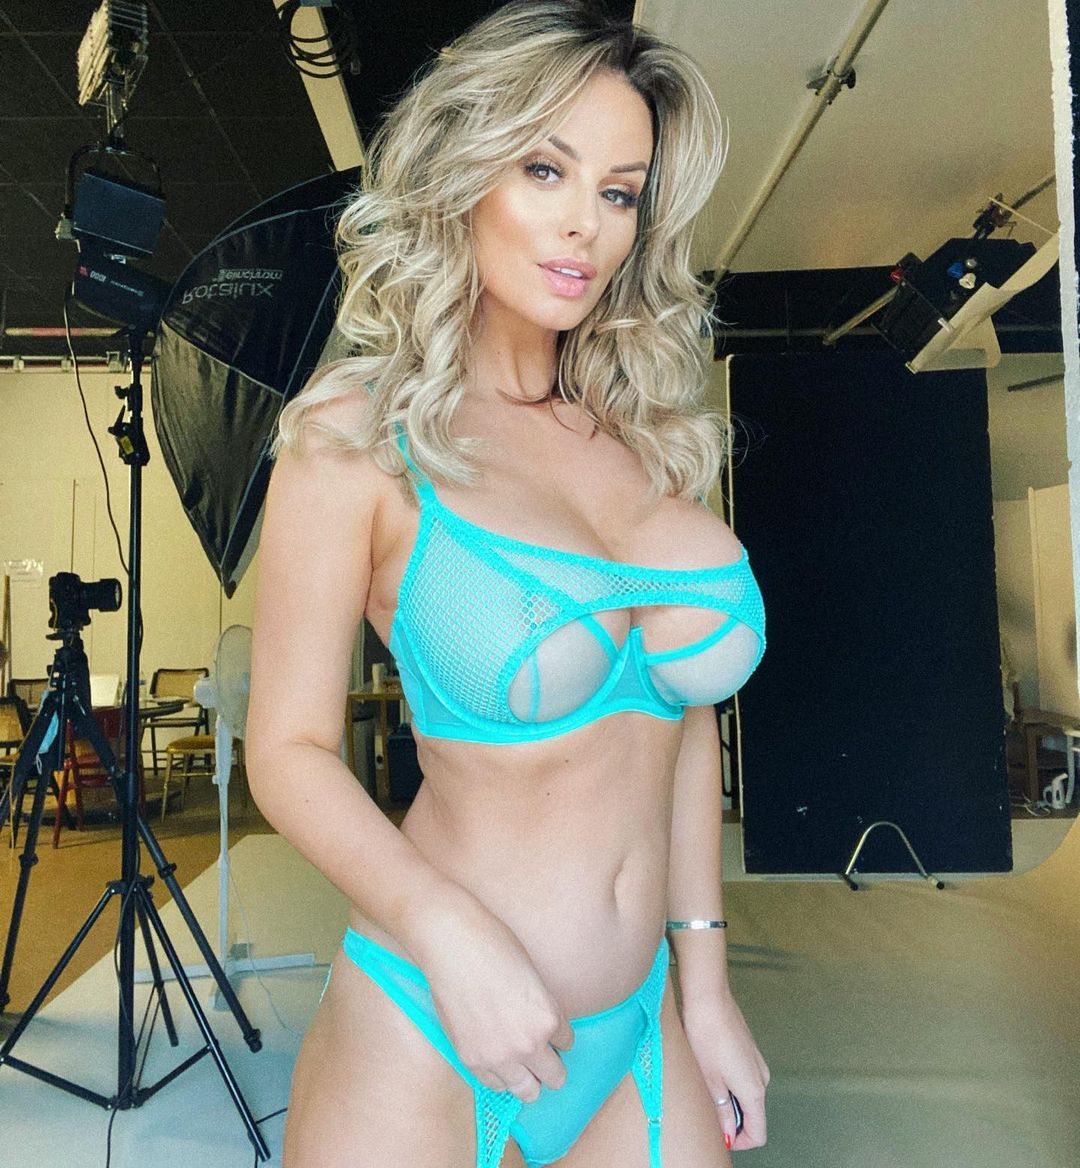 Who is Rhian Sugden Immoral offer to the famous model 5